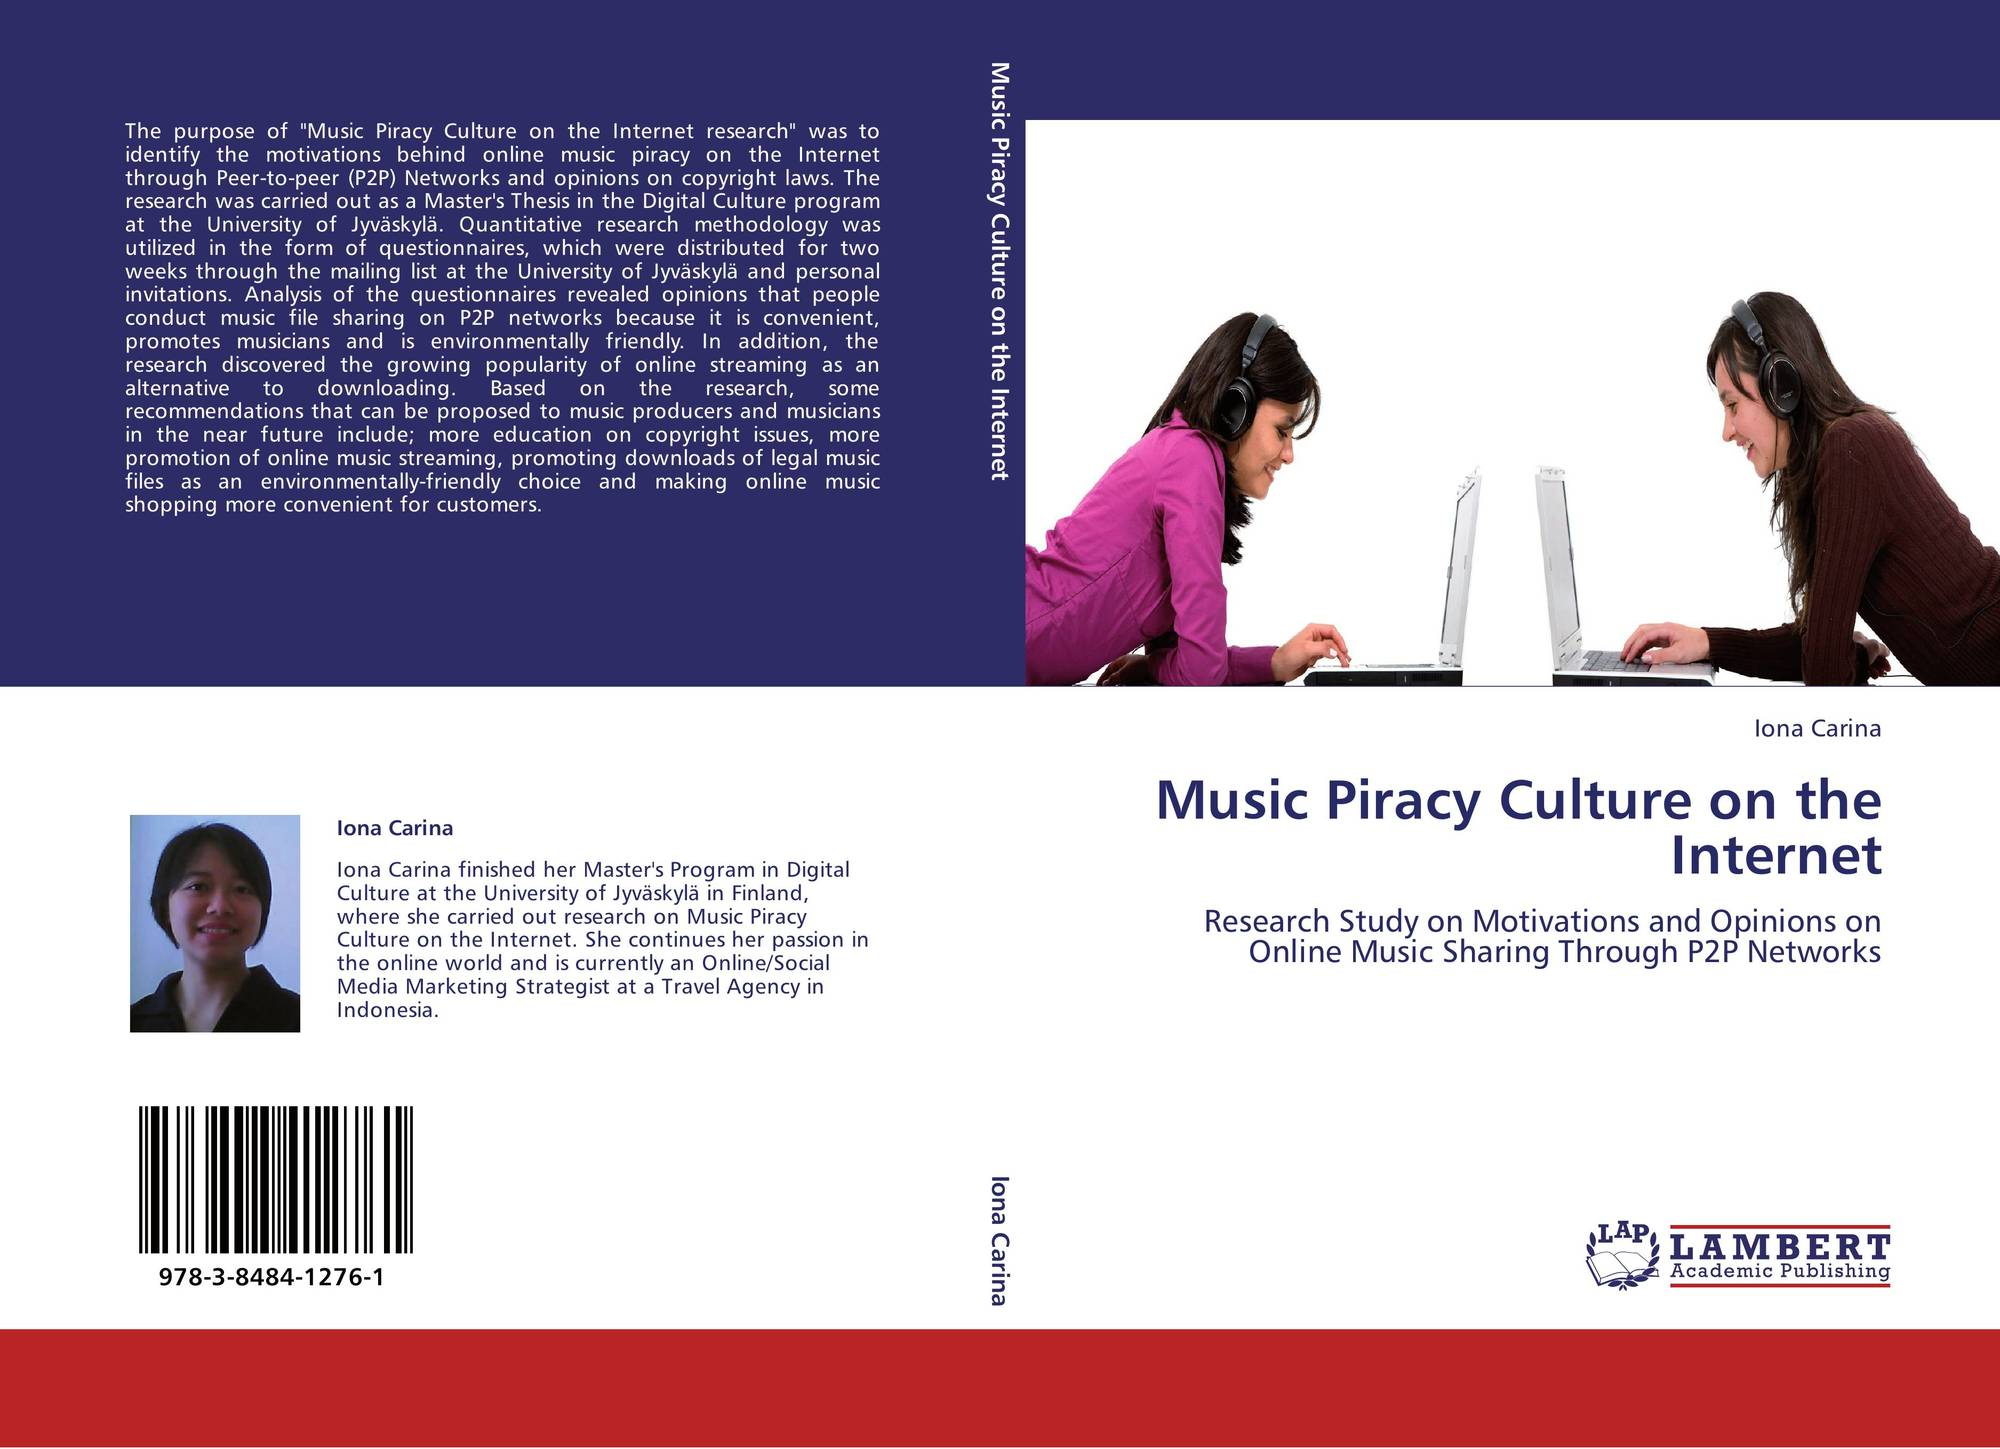 thesis on music piracy The evolution of the music this open access senior thesis is seemed to become a reality as record sales fell drastically at least partially due to piracy.